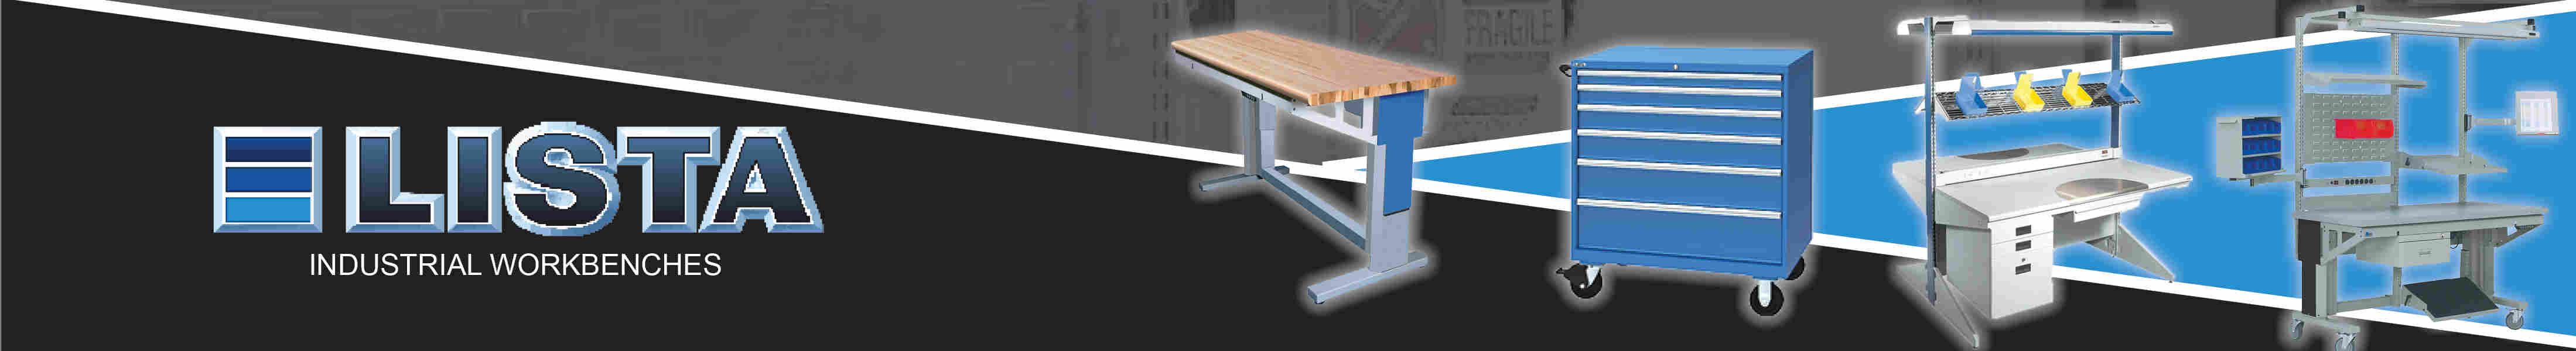 Lista Industrial Workbenches And Storage Cabinets